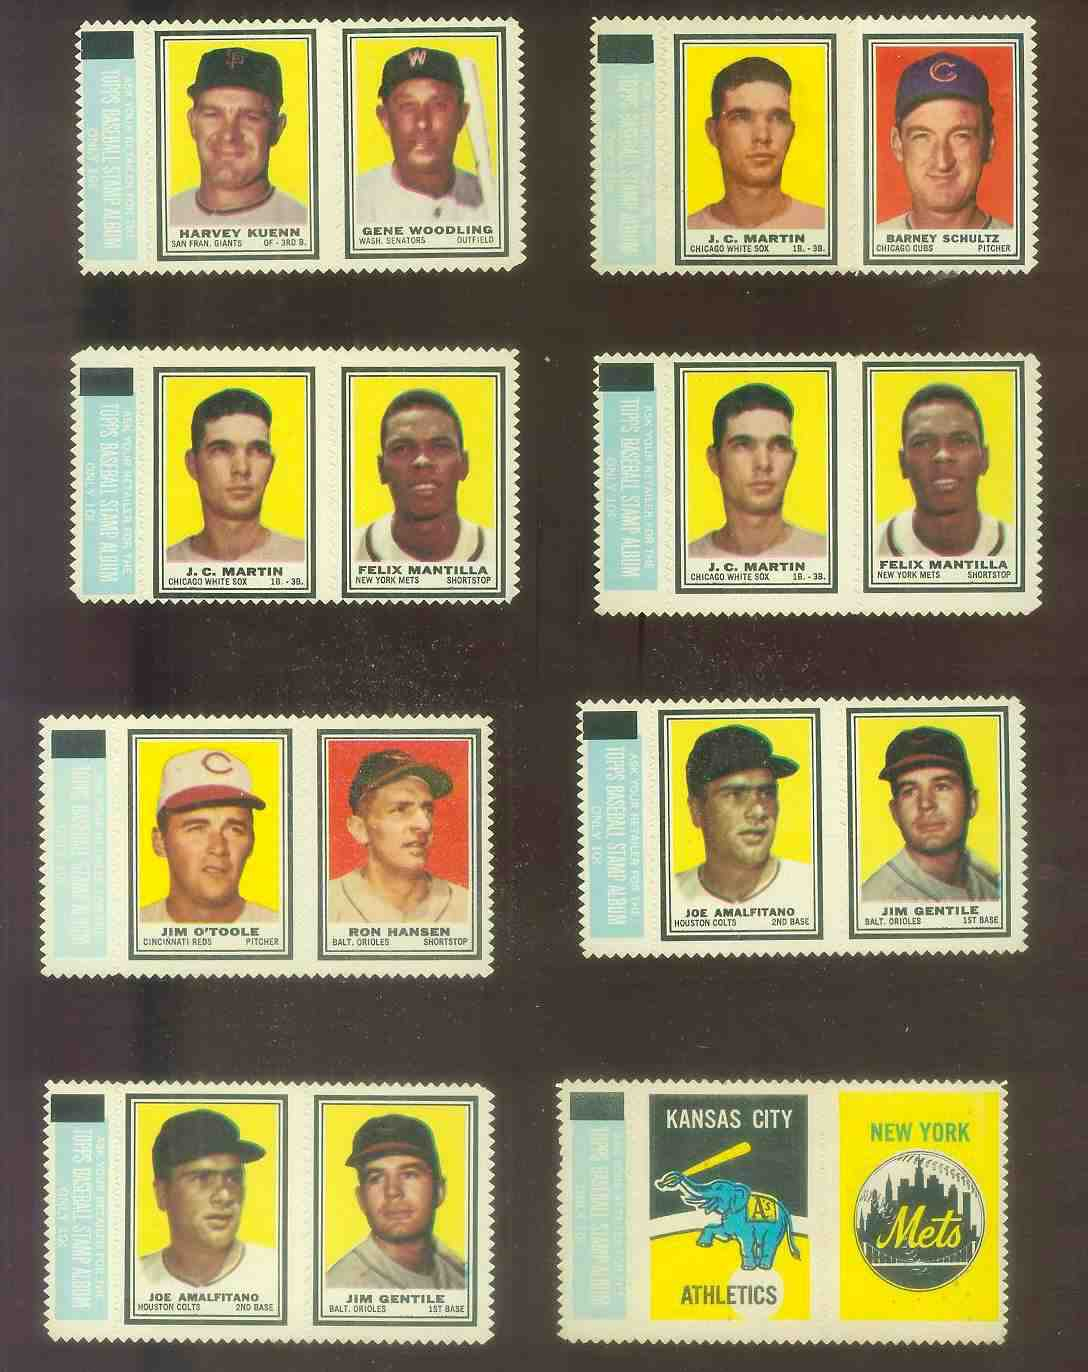 Joe Amalfitano/Jim Gentile - 1962 Topps STAMP PANEL with TAB !!! Baseball cards value